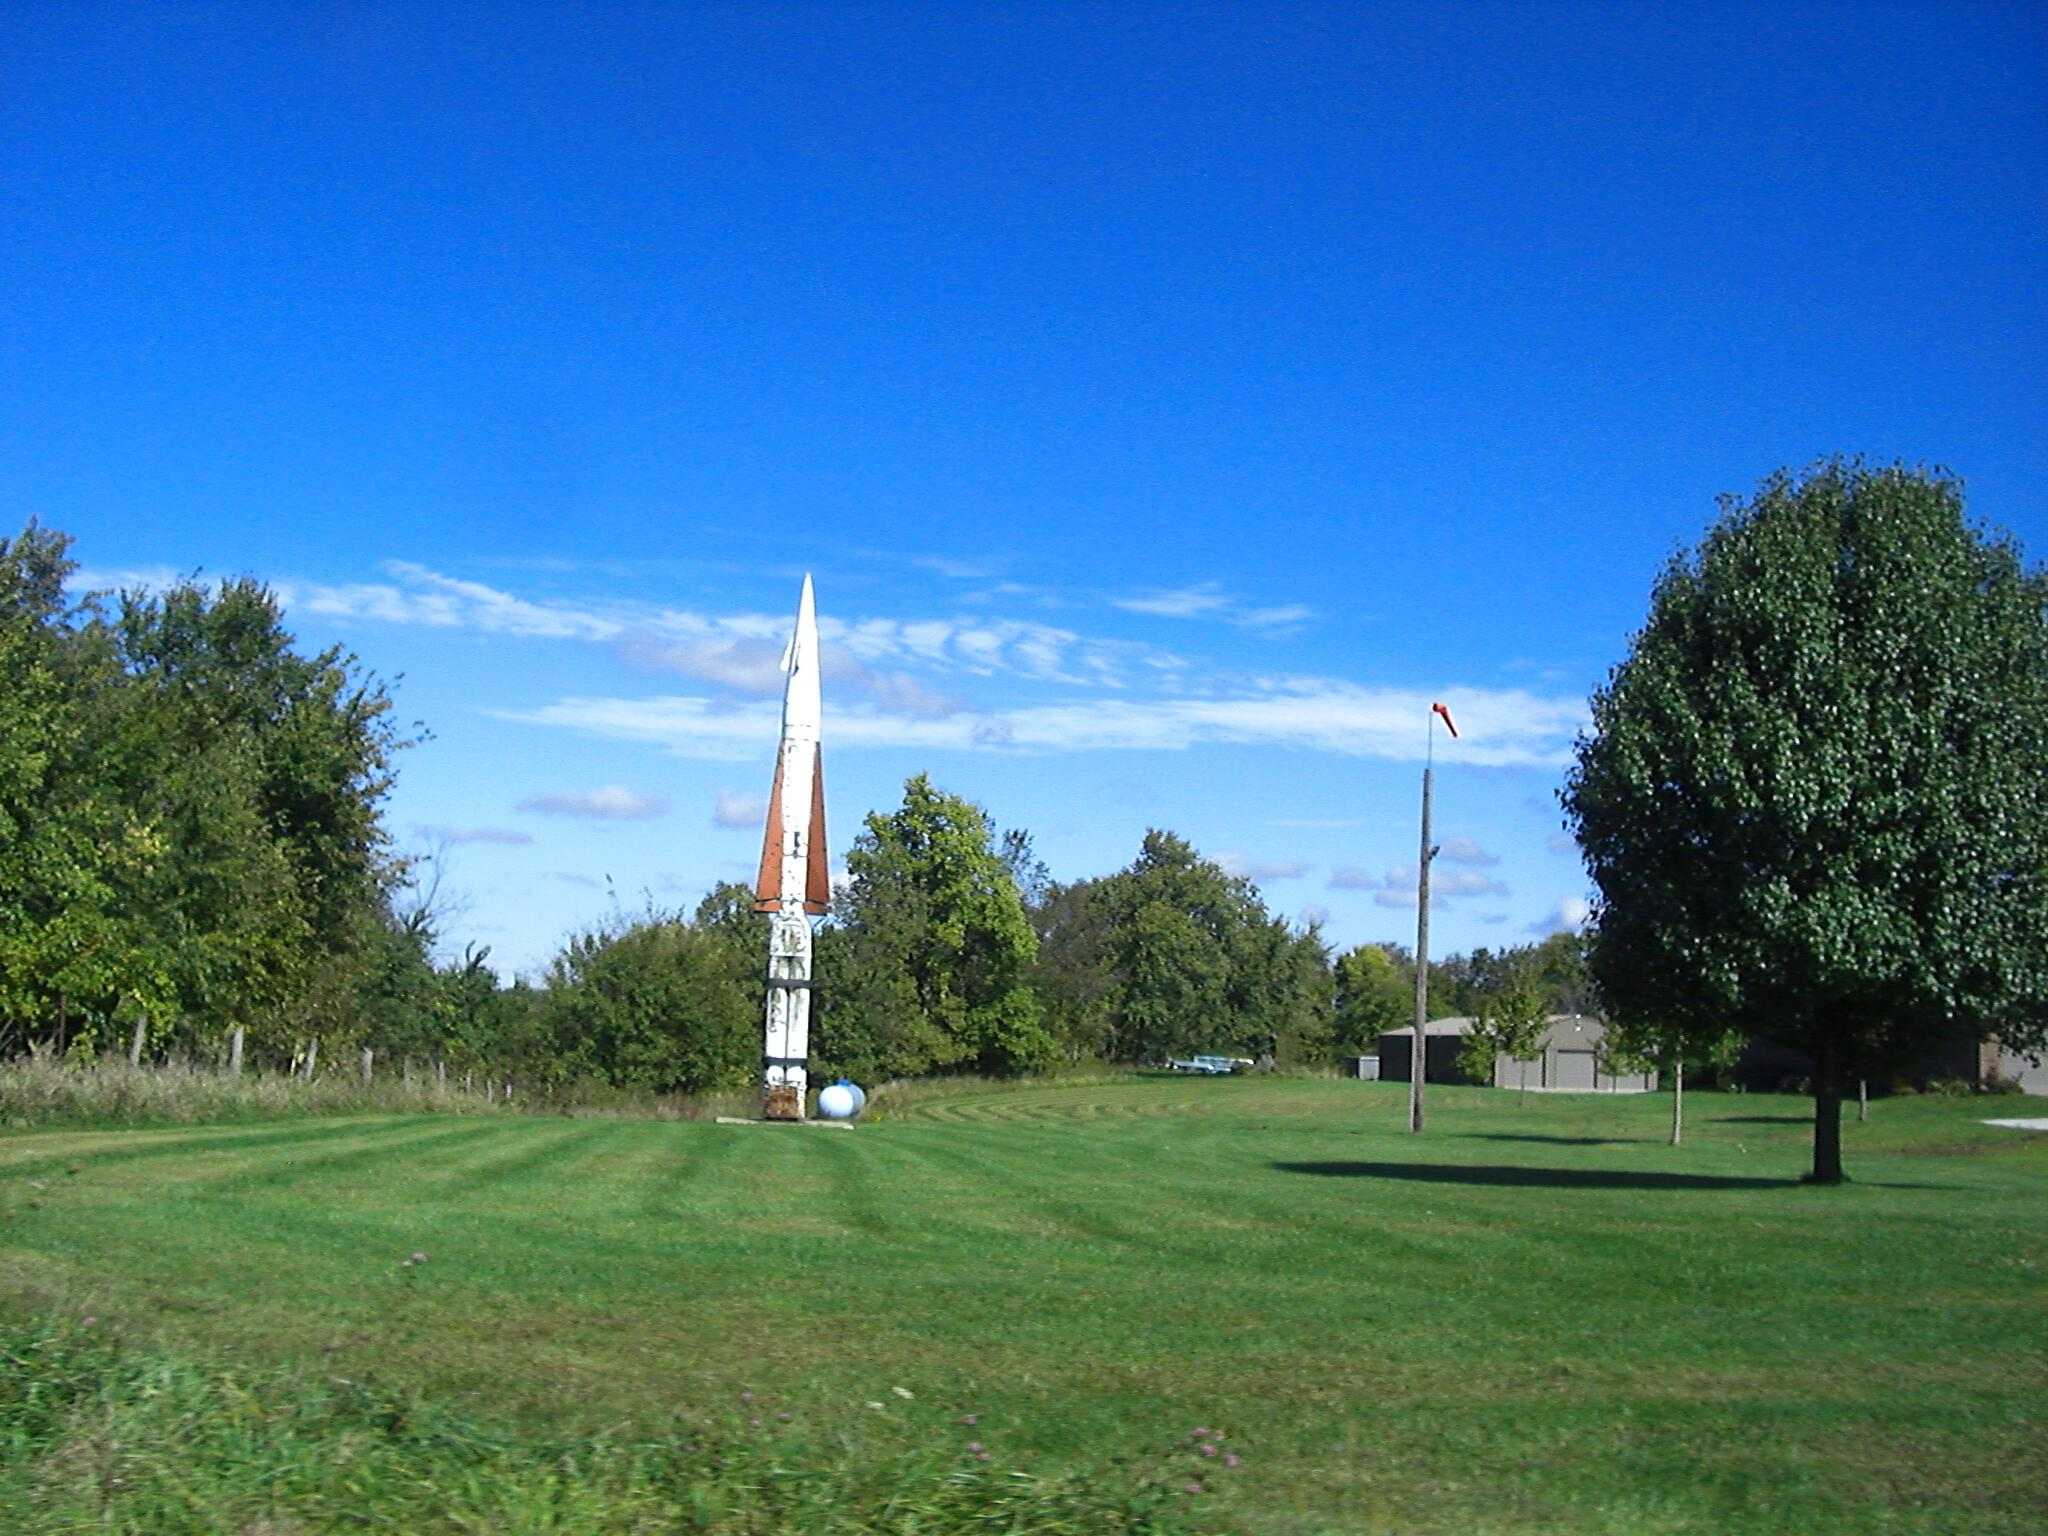 Rocket in yard Knox County Illinois